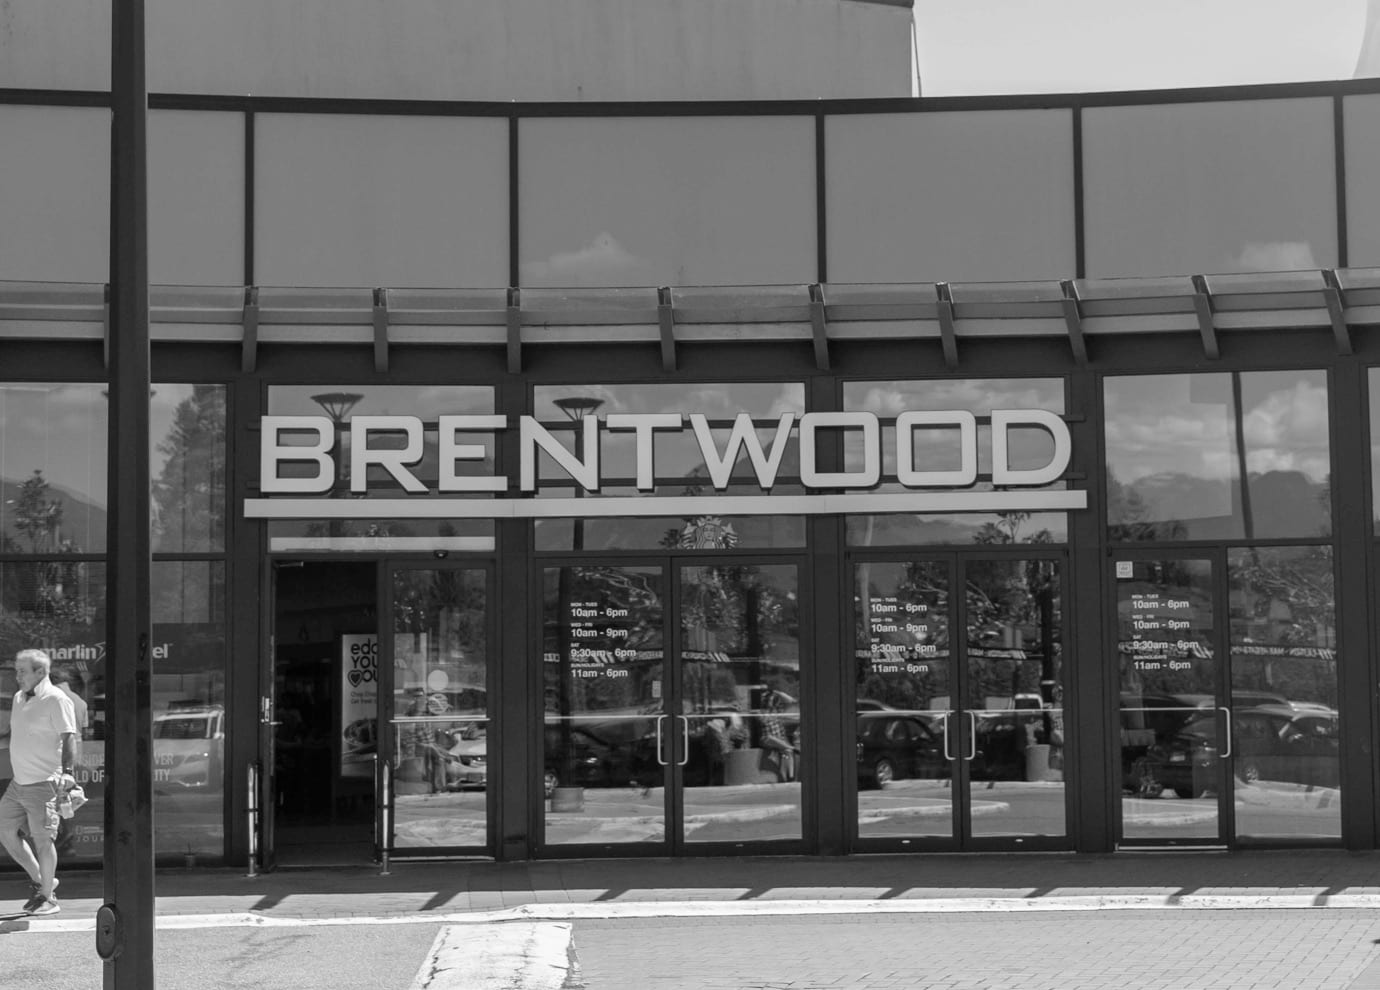 The entrance to Brentwood Town Centre in Burnaby.